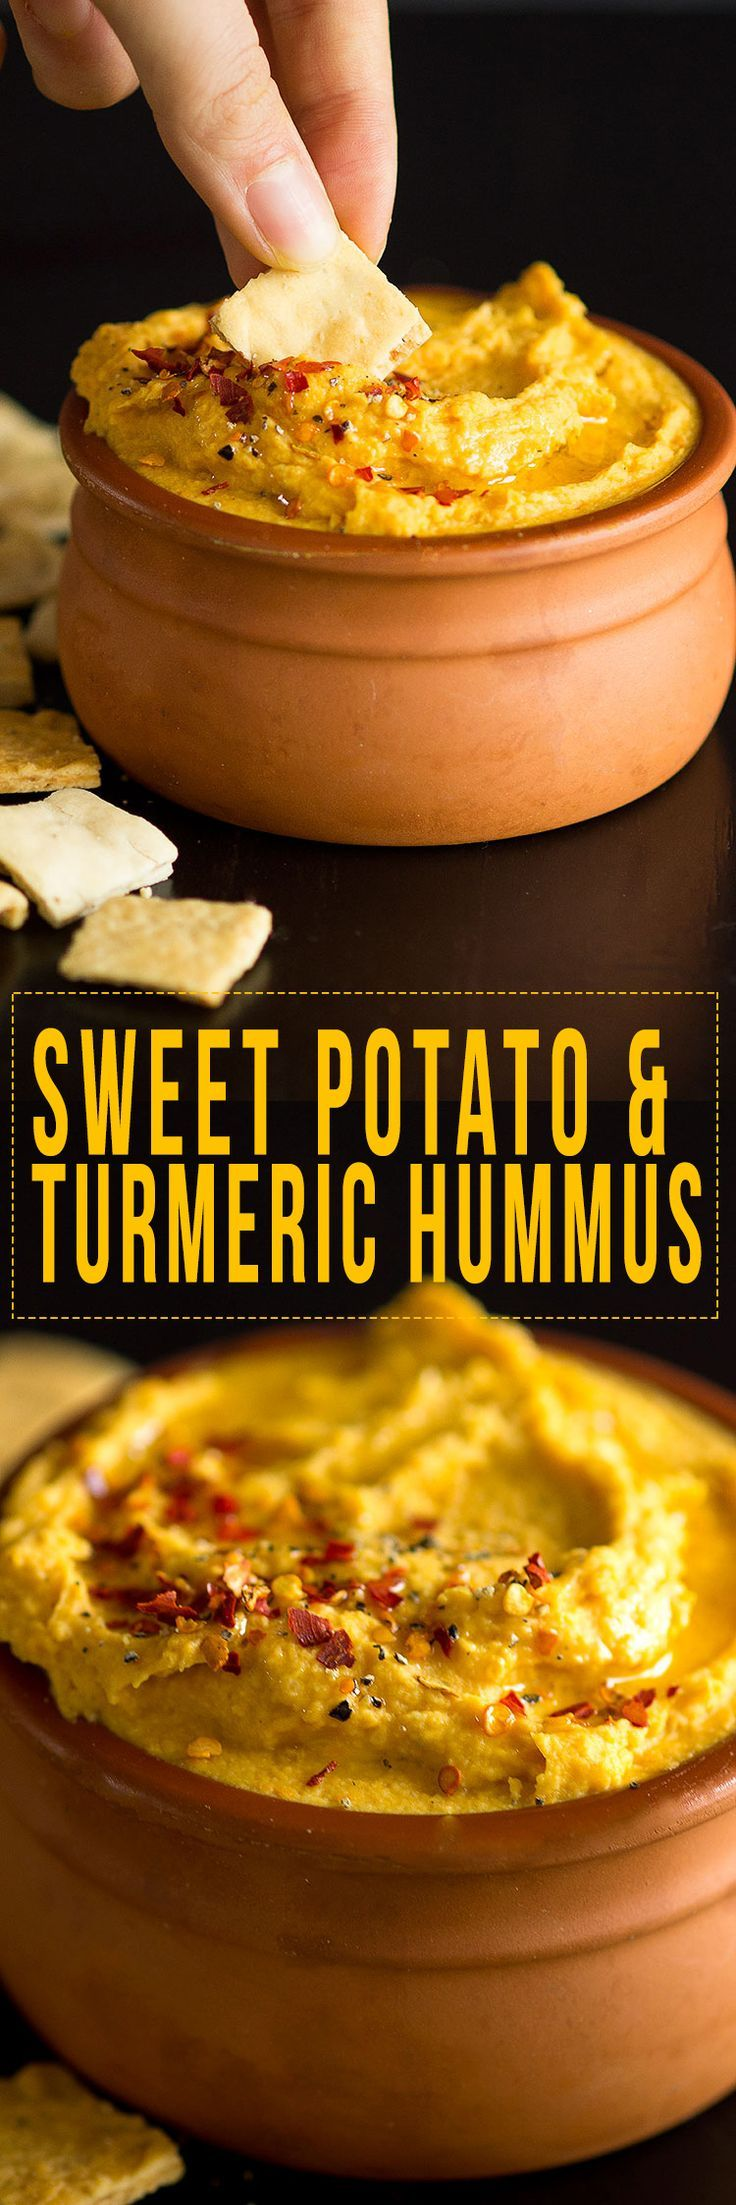 Dreamy Creamy Turmeric Sweet Potato Dip | Baked sweet potato with cannelini beans, tahini, garlic and spices to make the most delicious creamy dip.